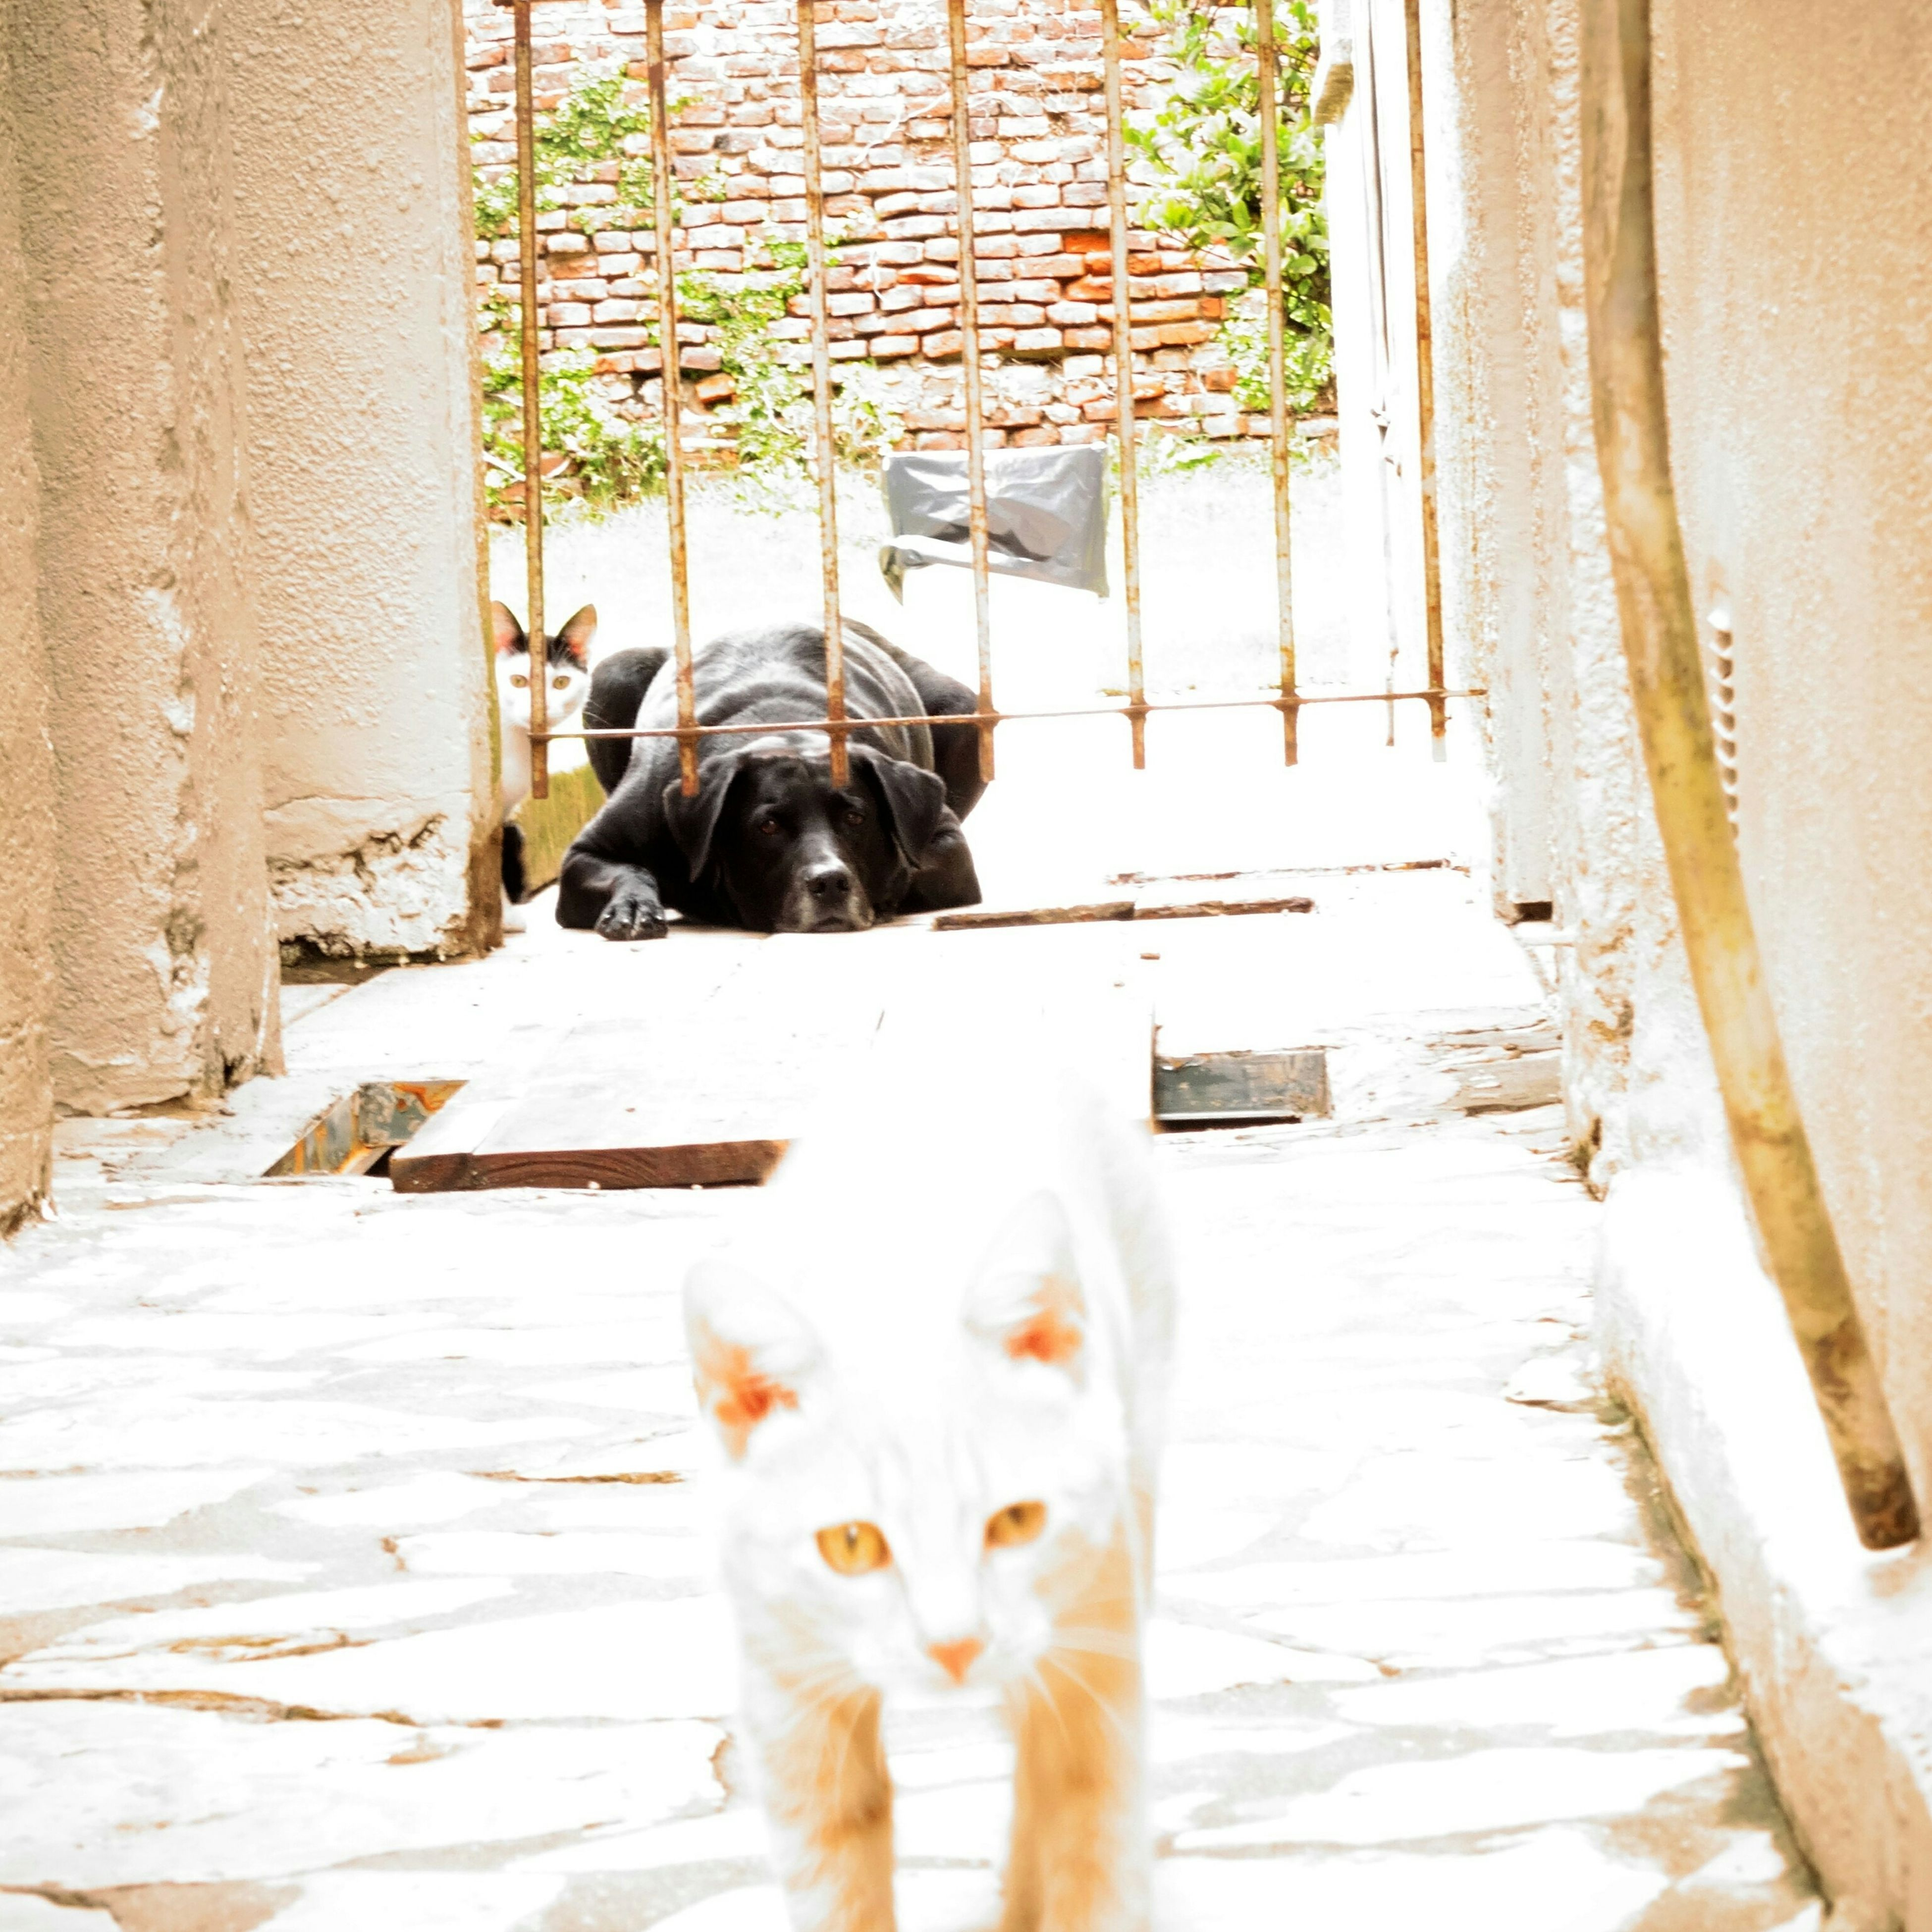 domestic animals, mammal, pets, animal themes, one animal, dog, domestic cat, cat, portrait, looking at camera, architecture, feline, built structure, full length, building exterior, standing, one person, house, sitting, day